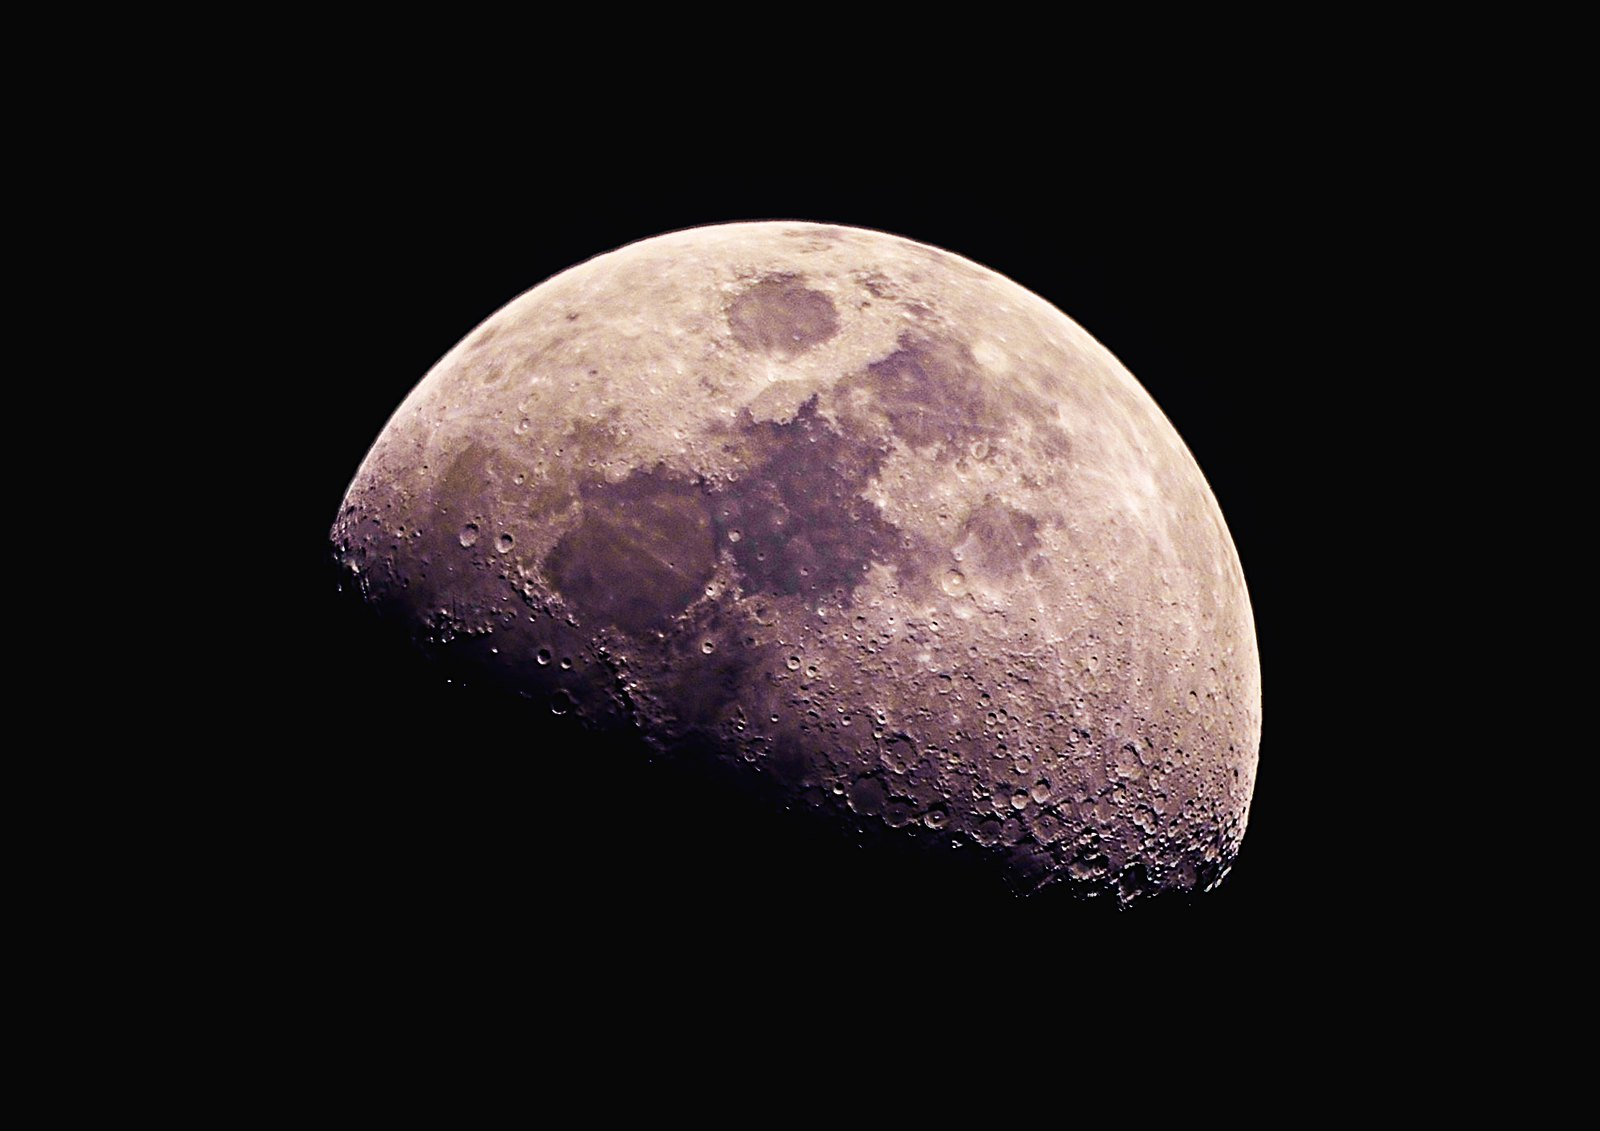 The Moon does have colour